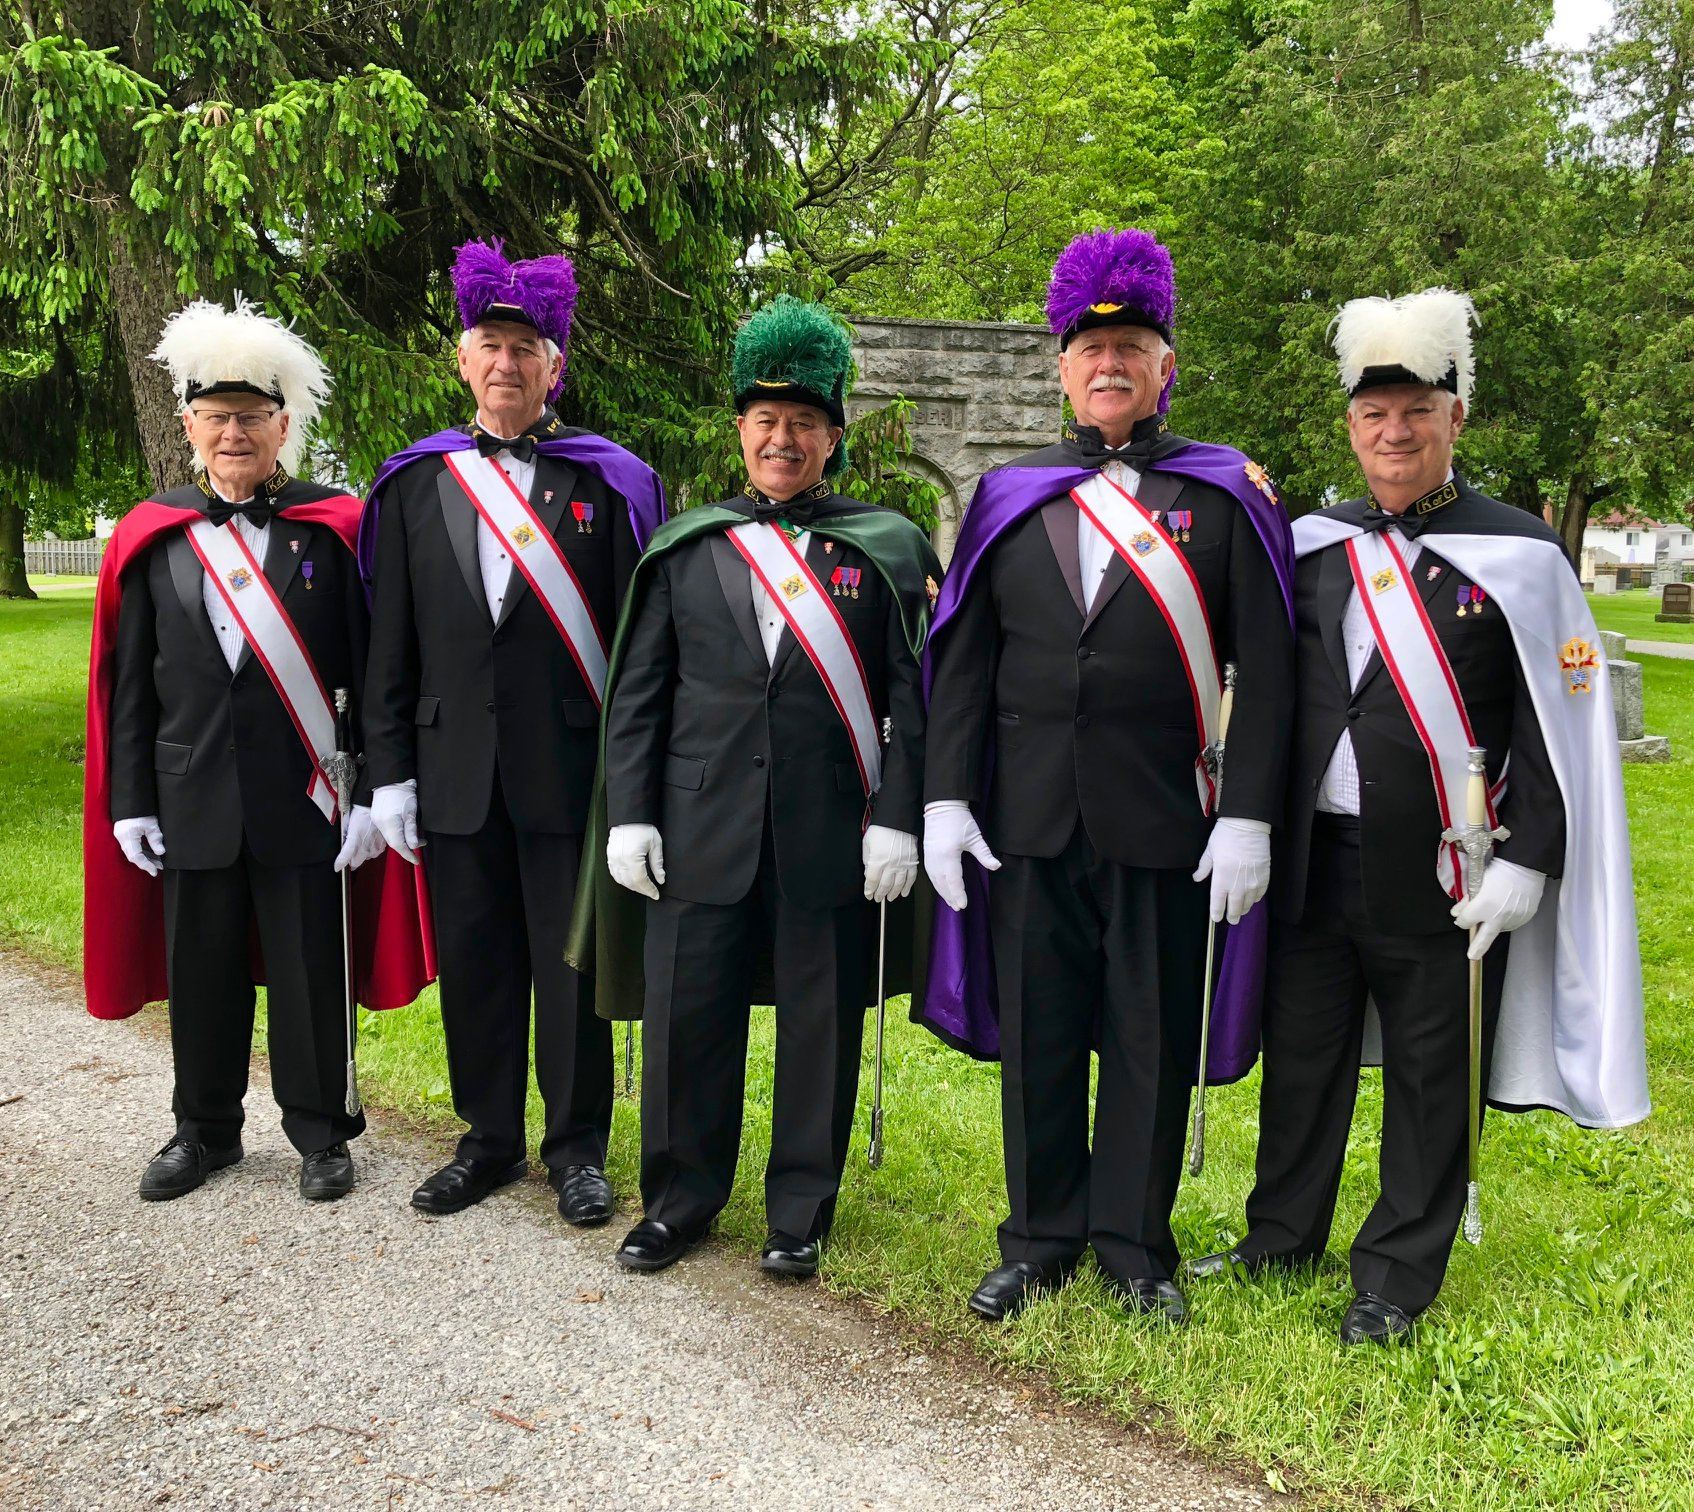 Knights of Columbus members